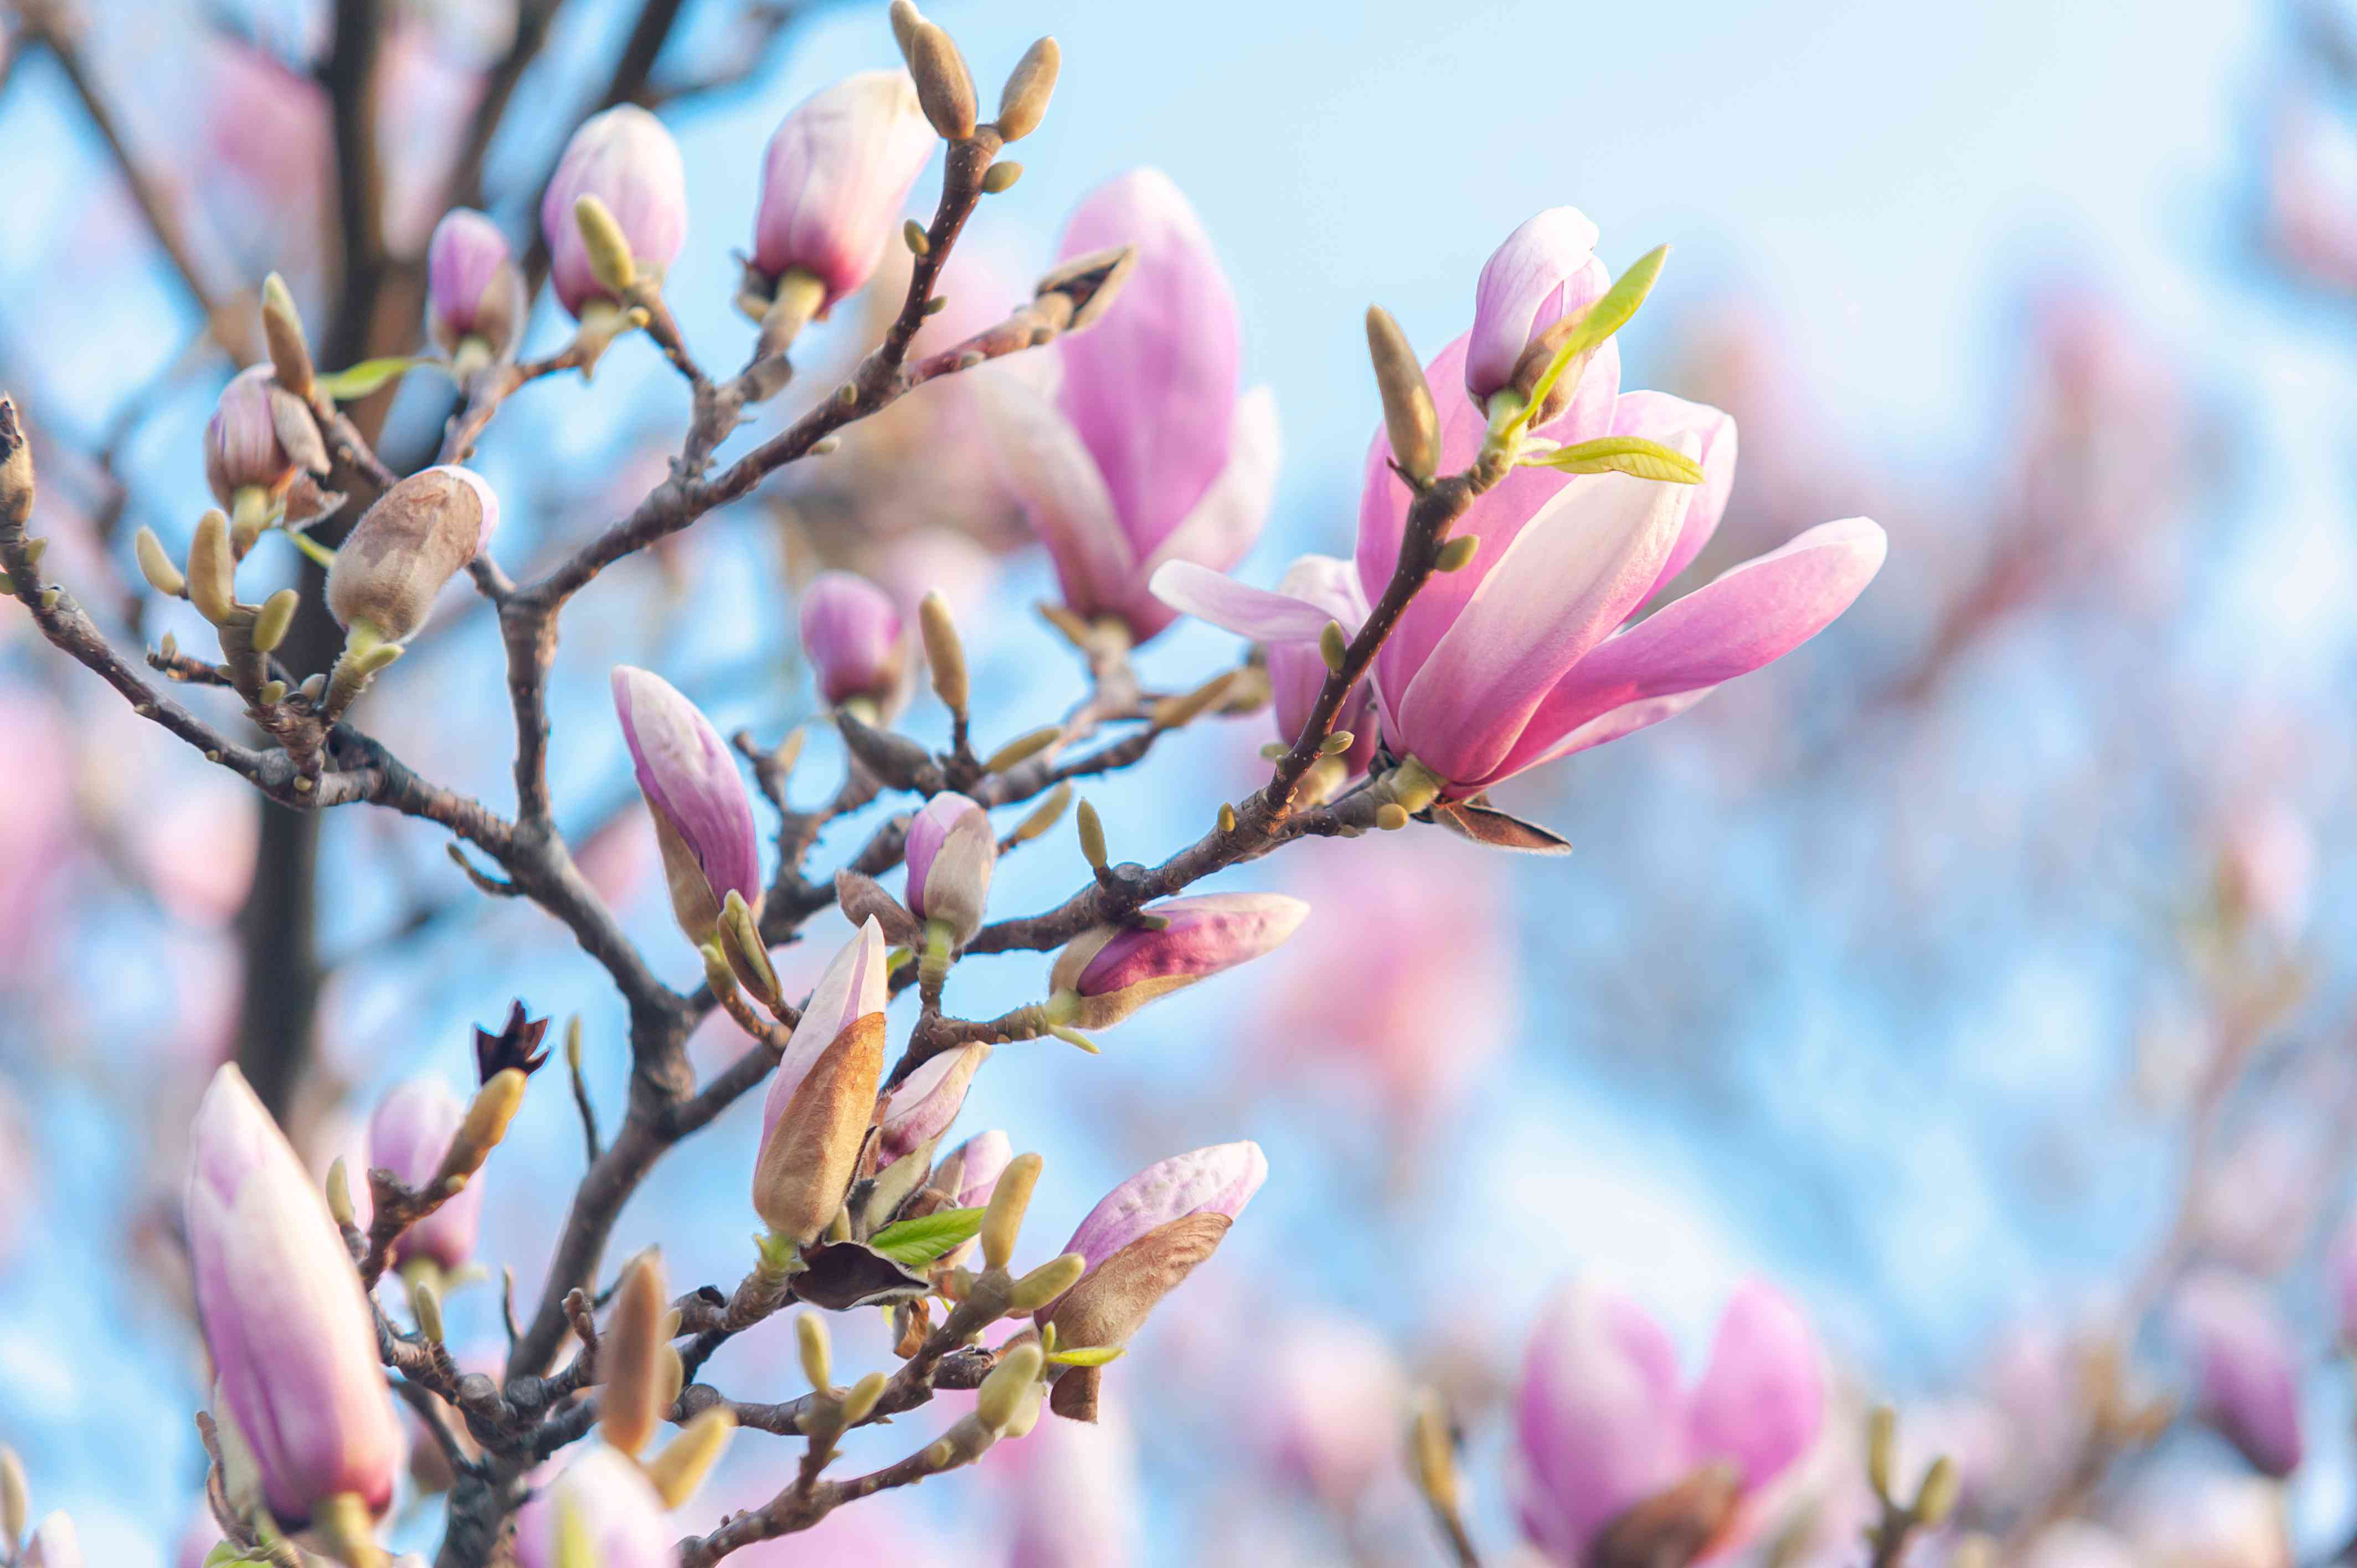 Magnolia tree branch with small pink blooms and closed flowers